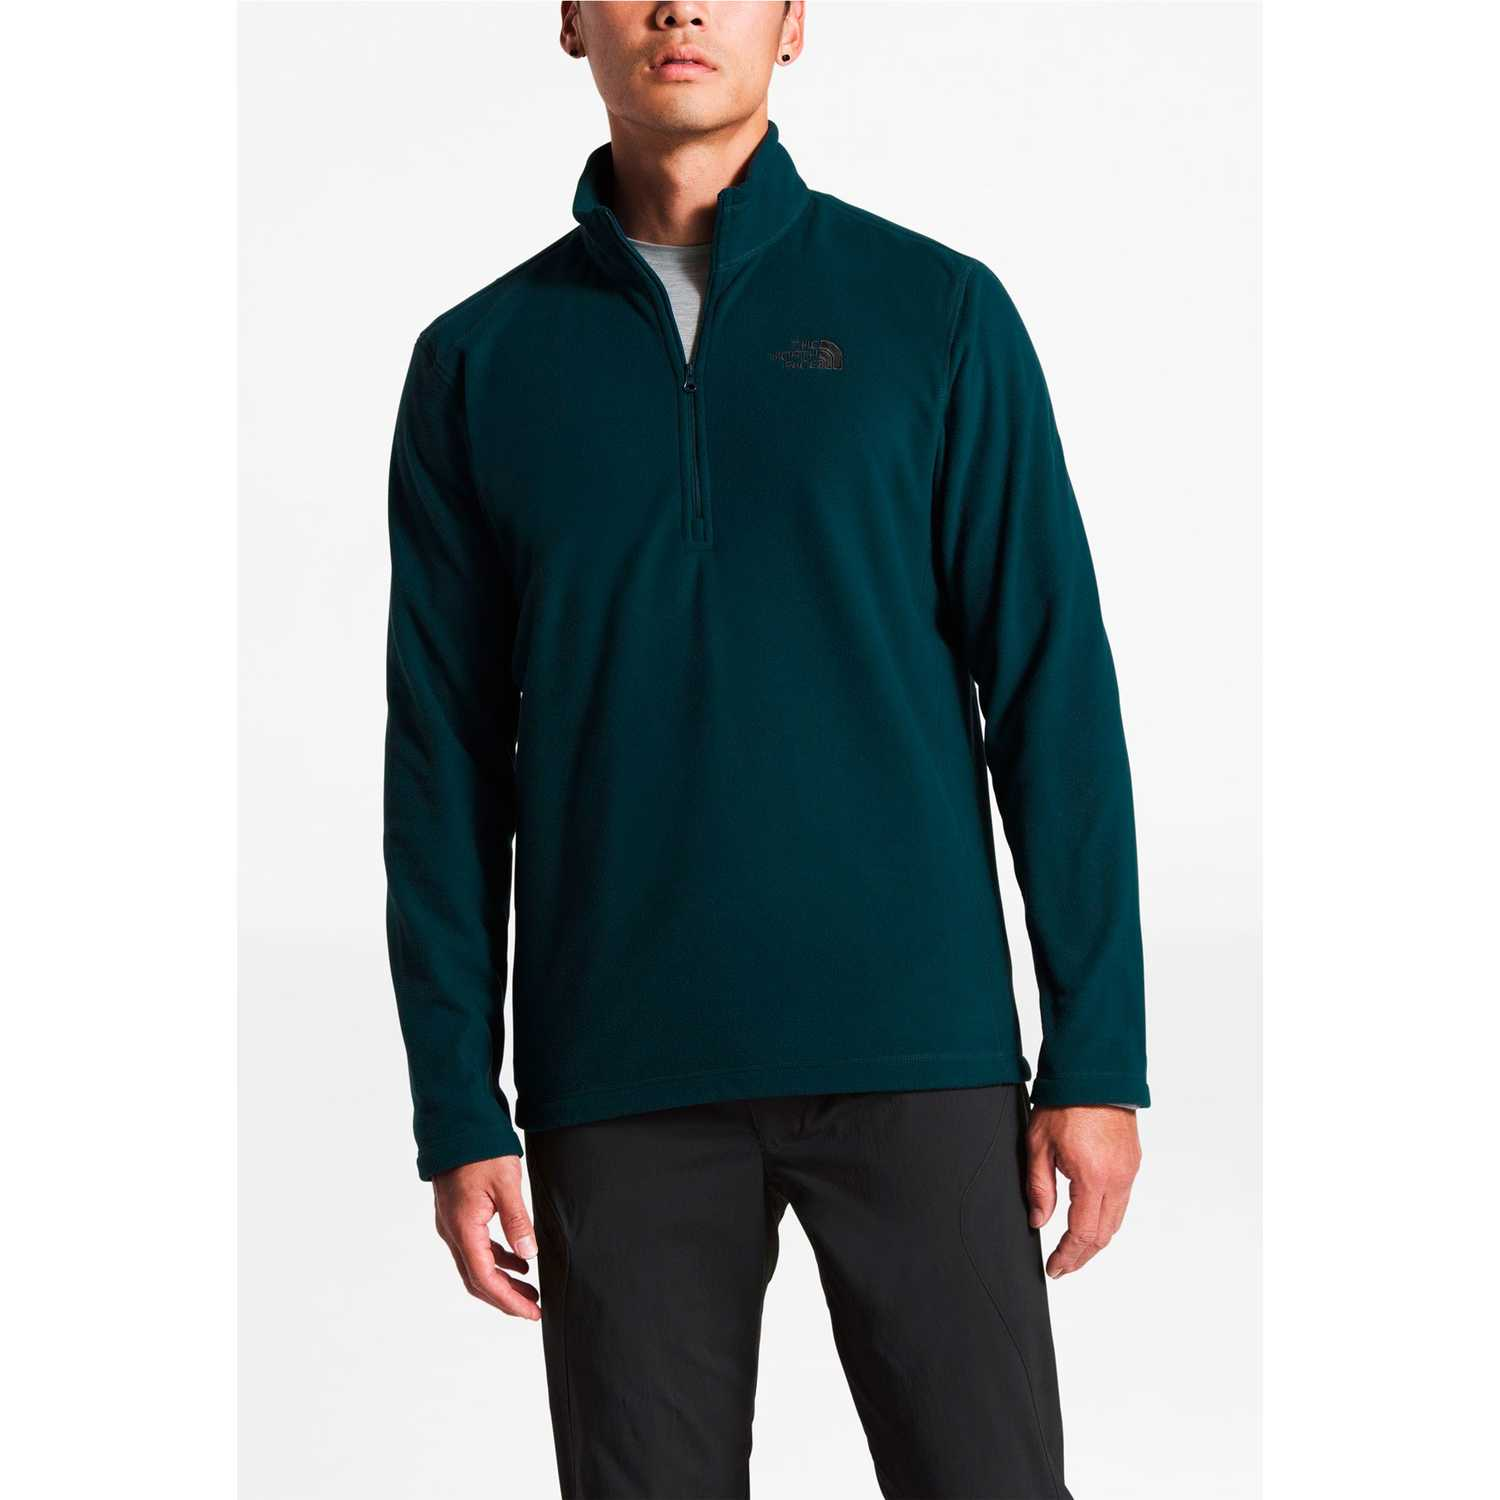 Casaca de Hombre The North Face Turquesa m tka 100 glacier 1/4 zip